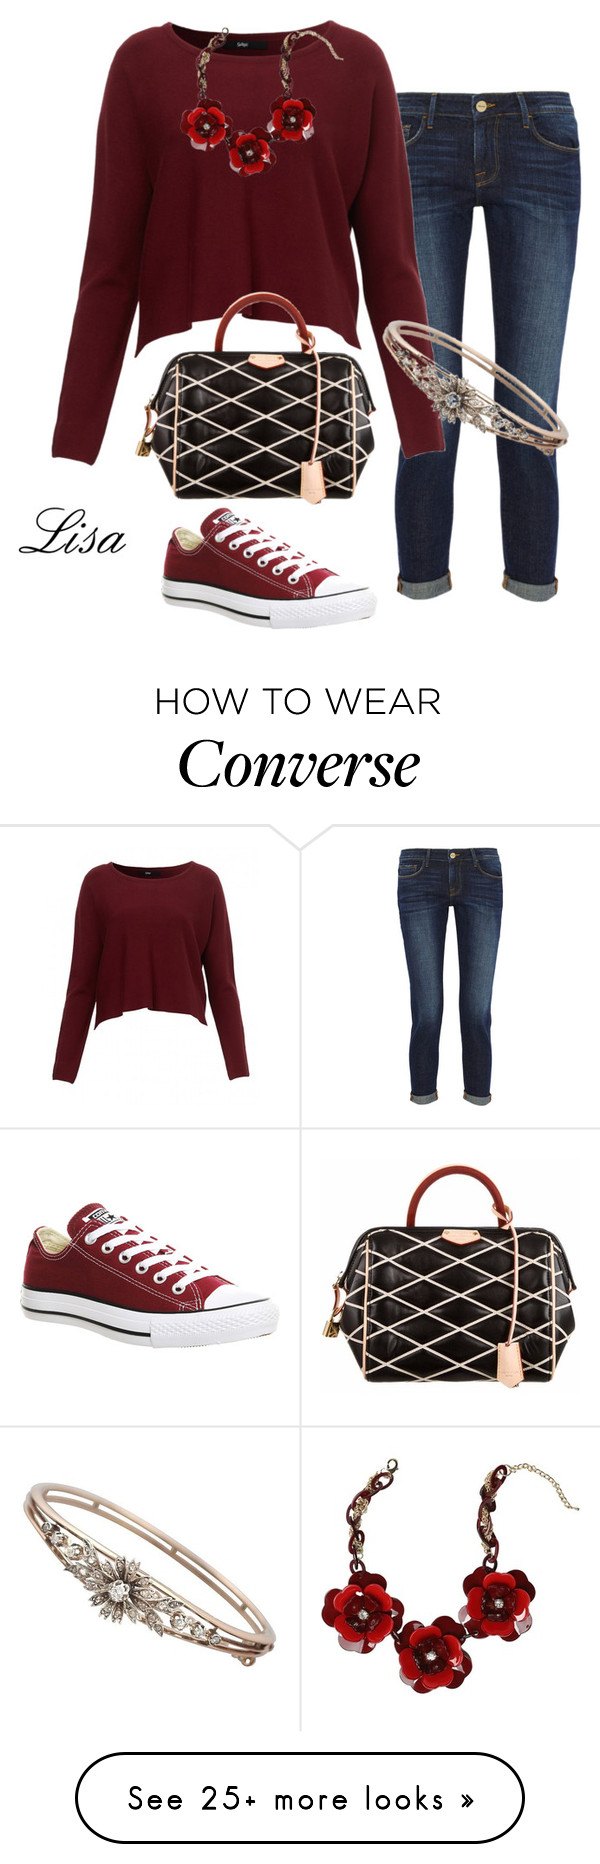 """Amber"" by coolmommy44 on Polyvore featuring moda, Frame Denim, Converse, Louis Vuitton y Bebe"